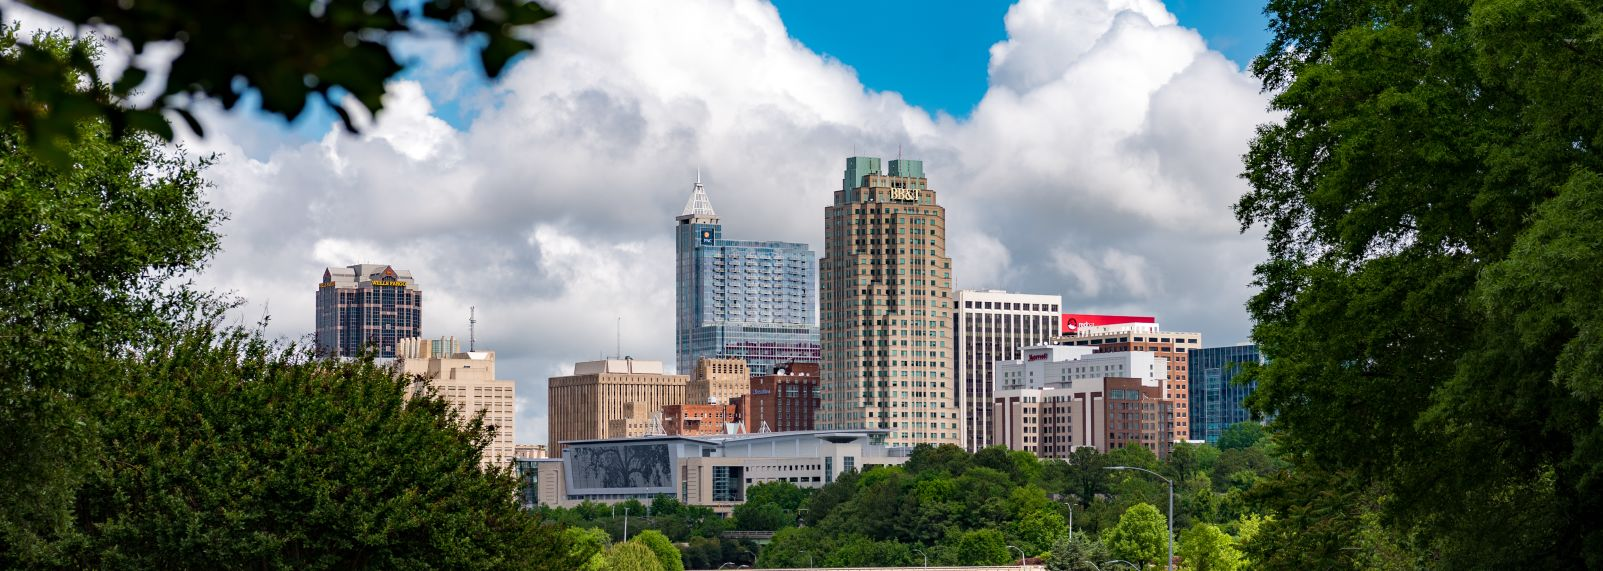 Raleigh Skyline April 2017